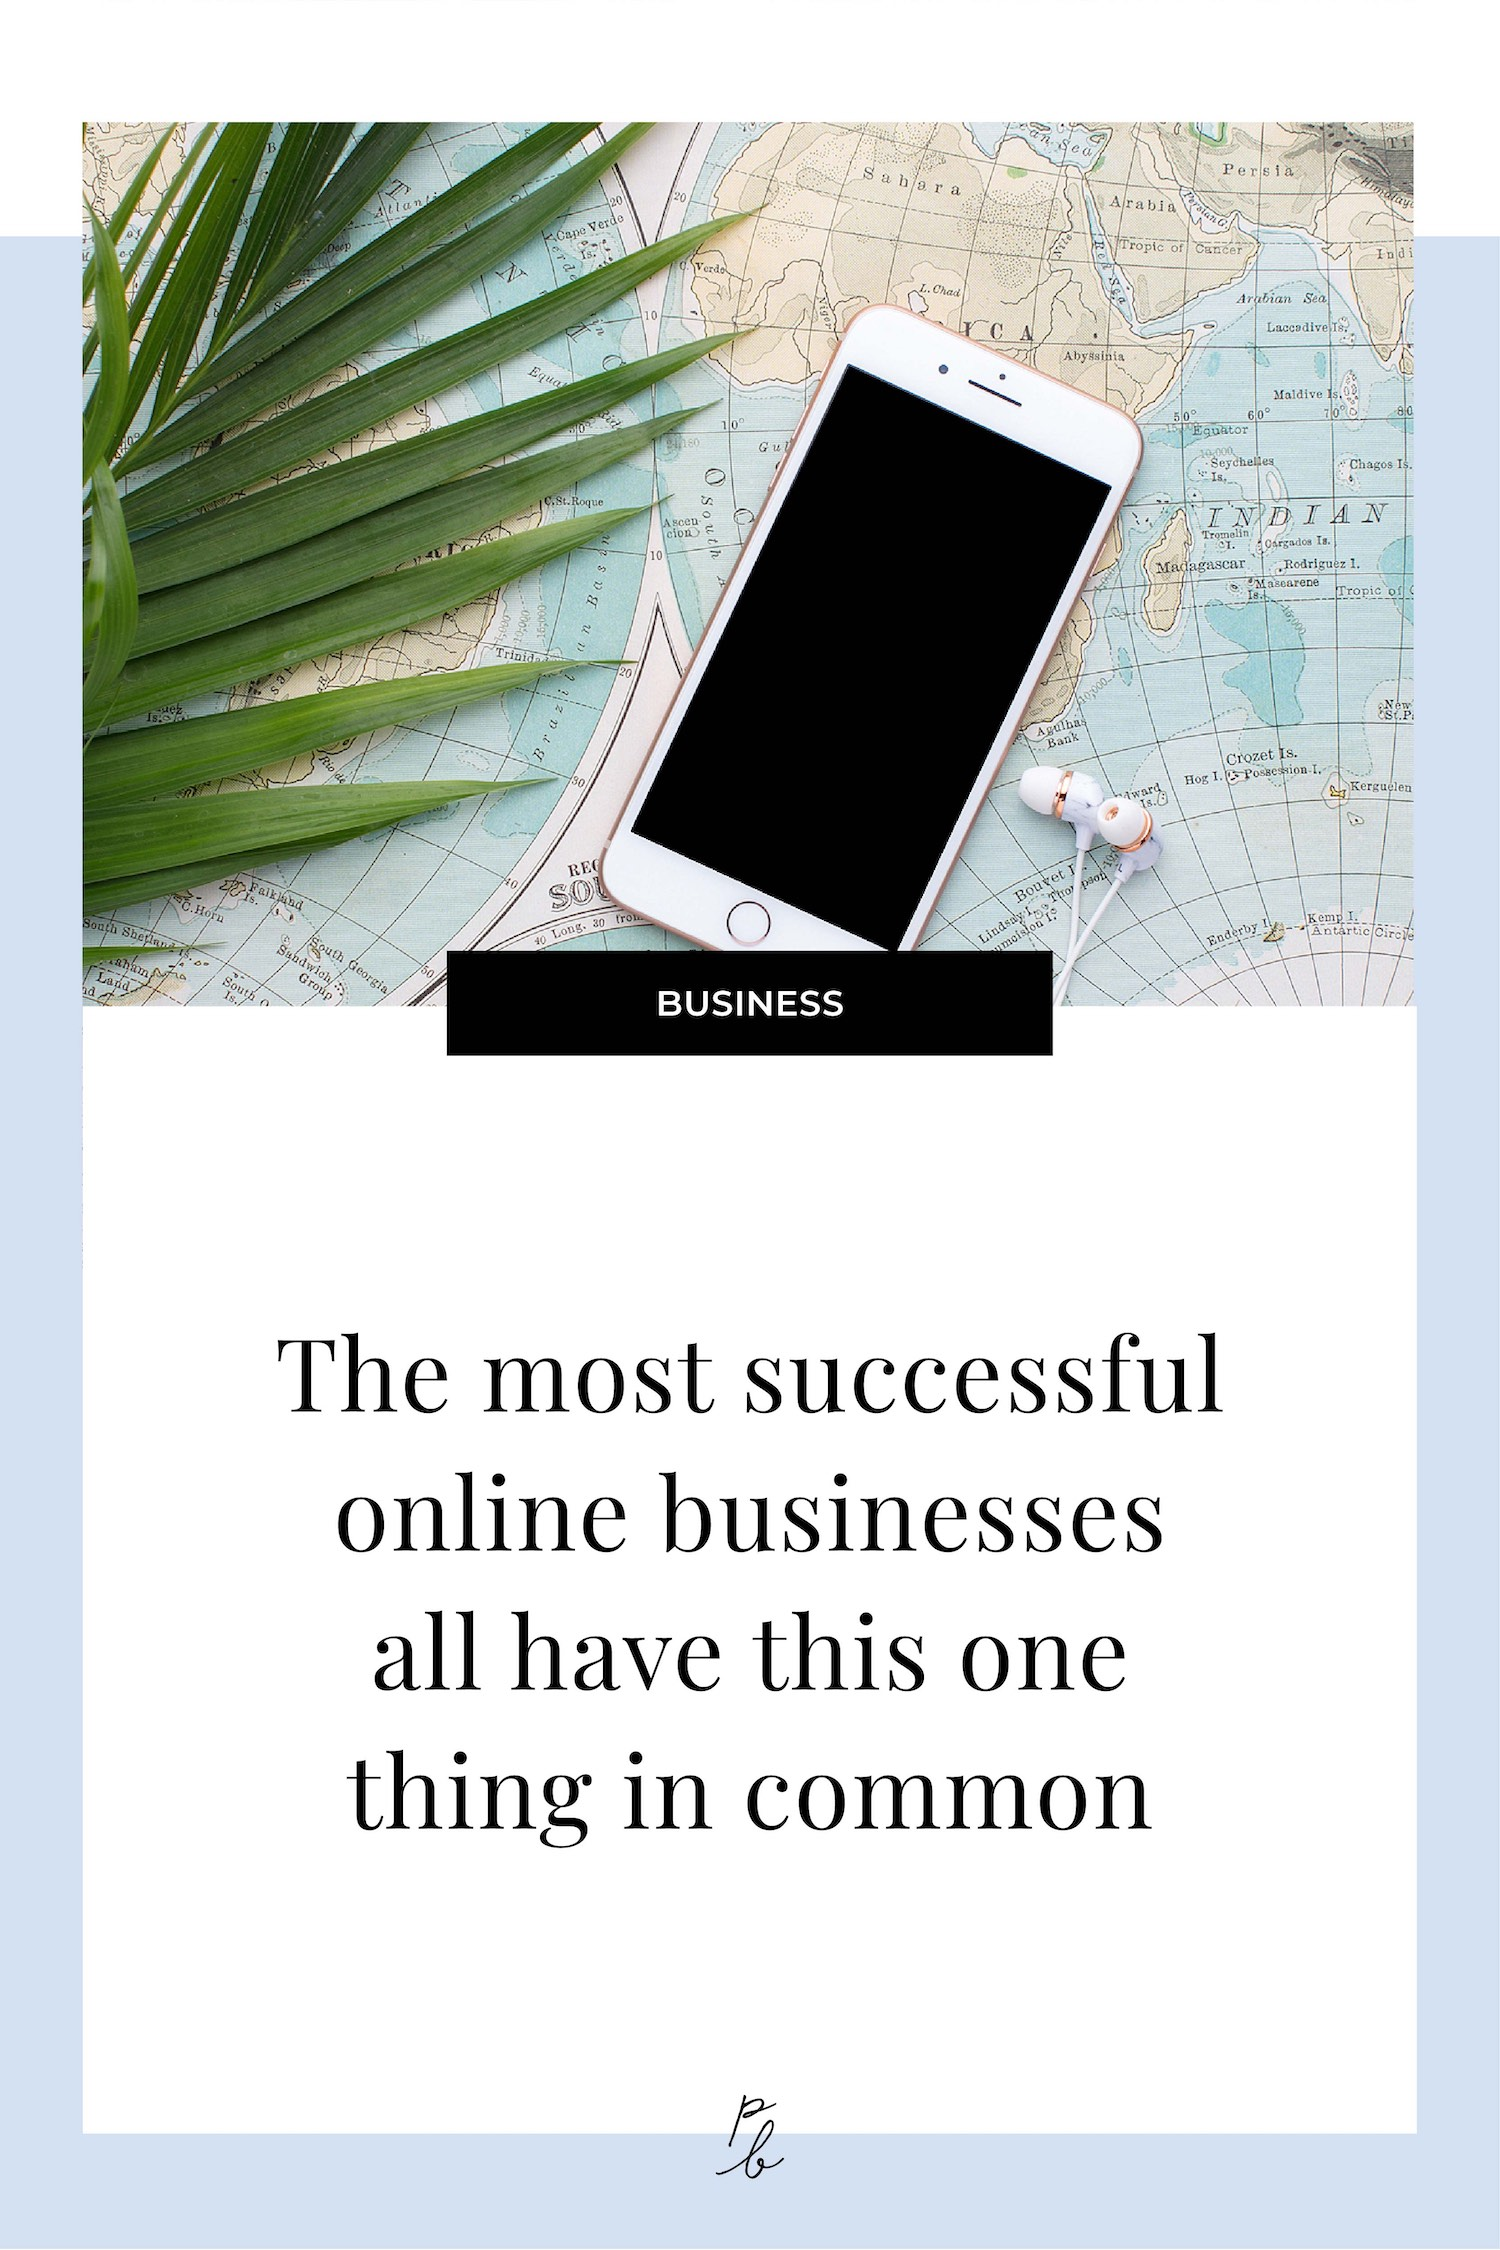 The most successful online businesses all have this 1 thing in common.jpg